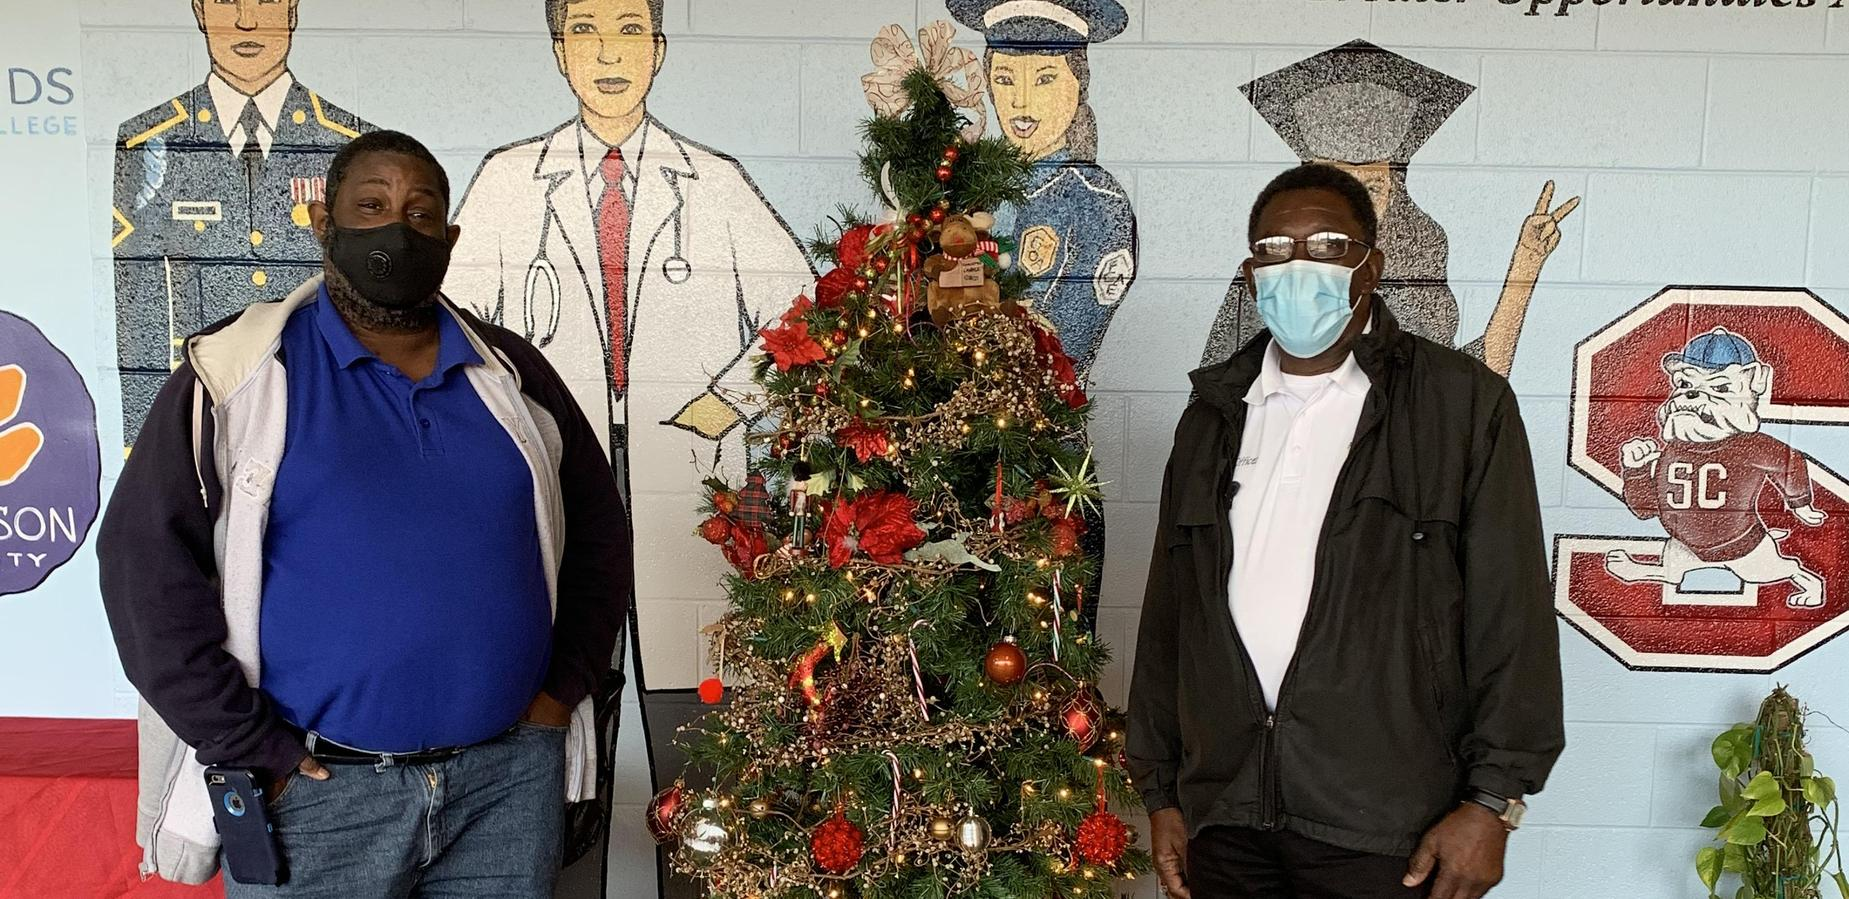 Mr. Carter and Mr. White spreading Christmas cheer!